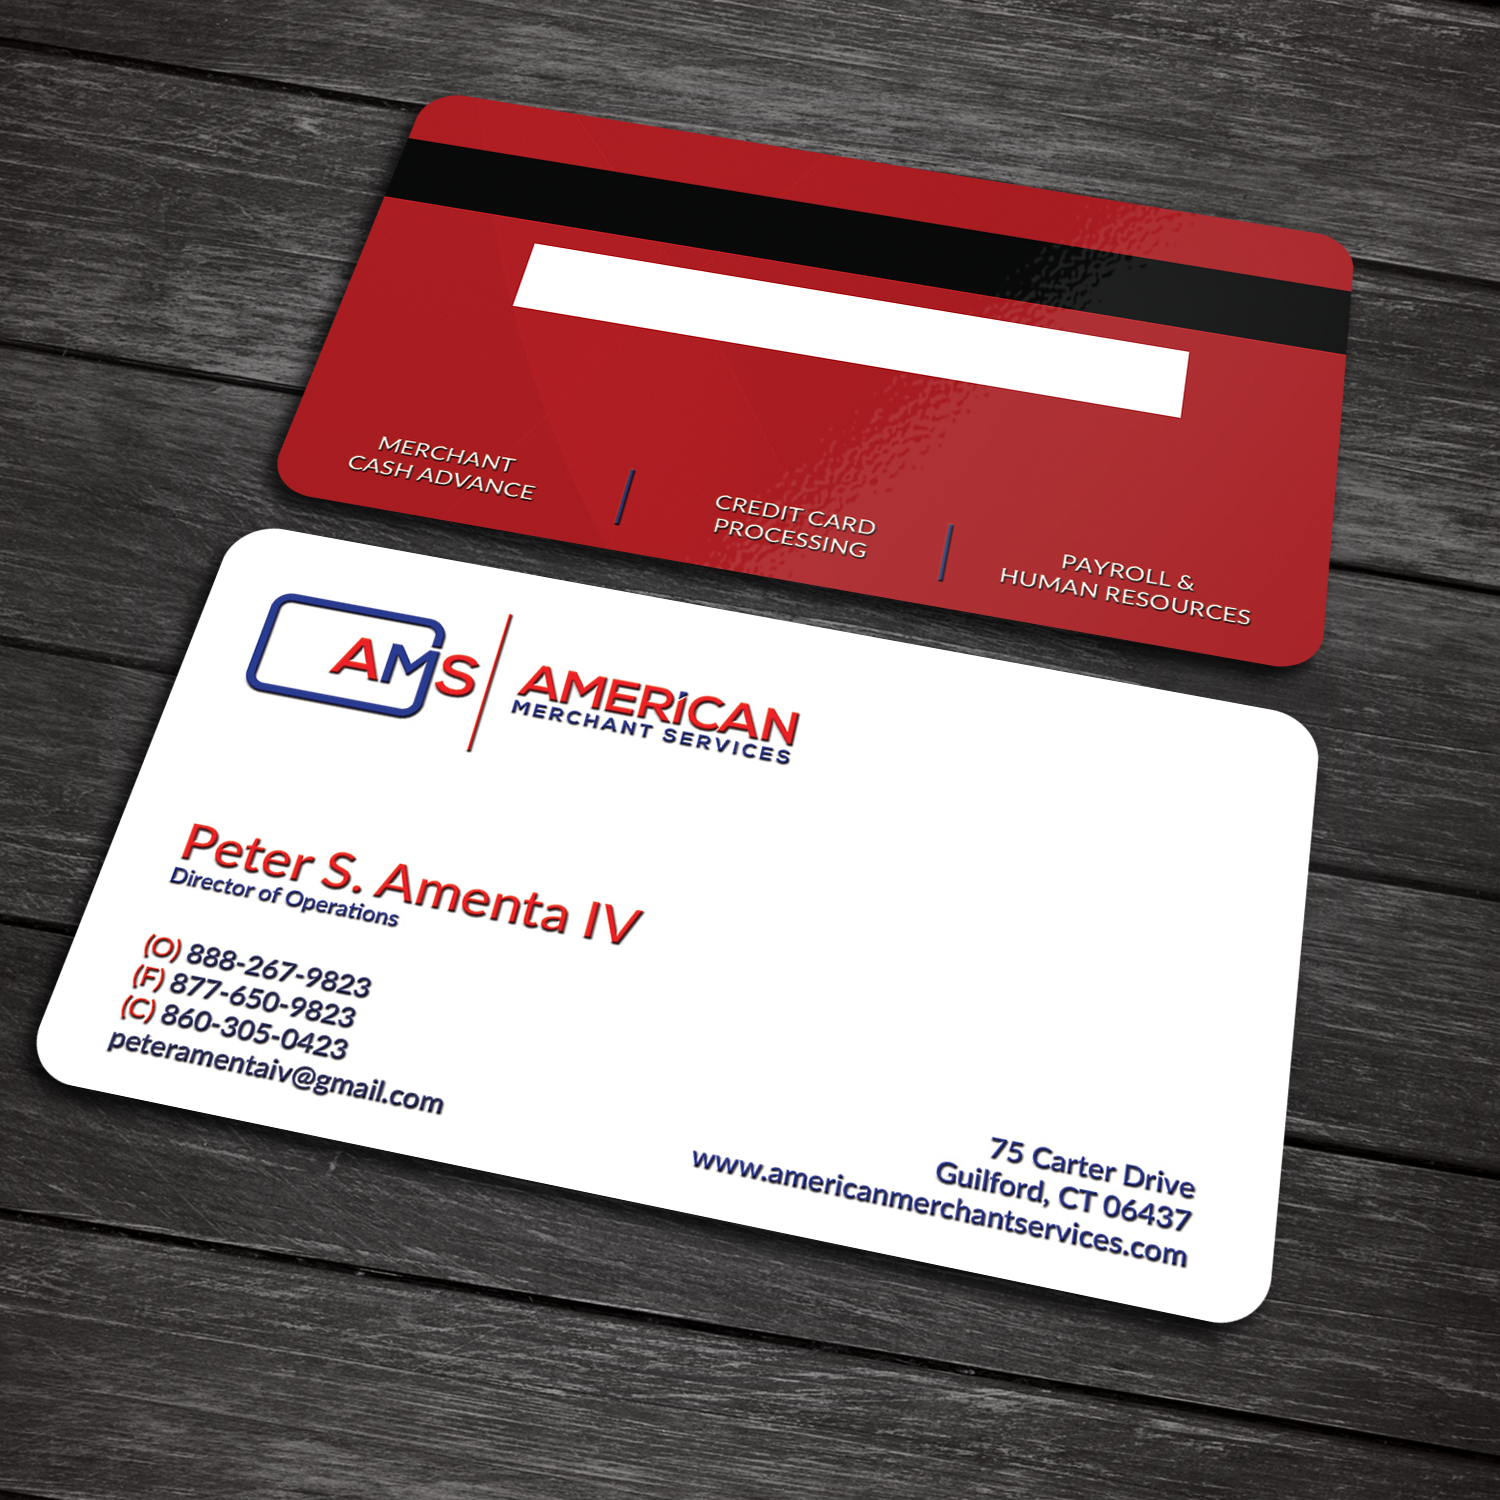 Elegant playful credit card business card design for american business card design by sanrell for american merchant services llc design colourmoves